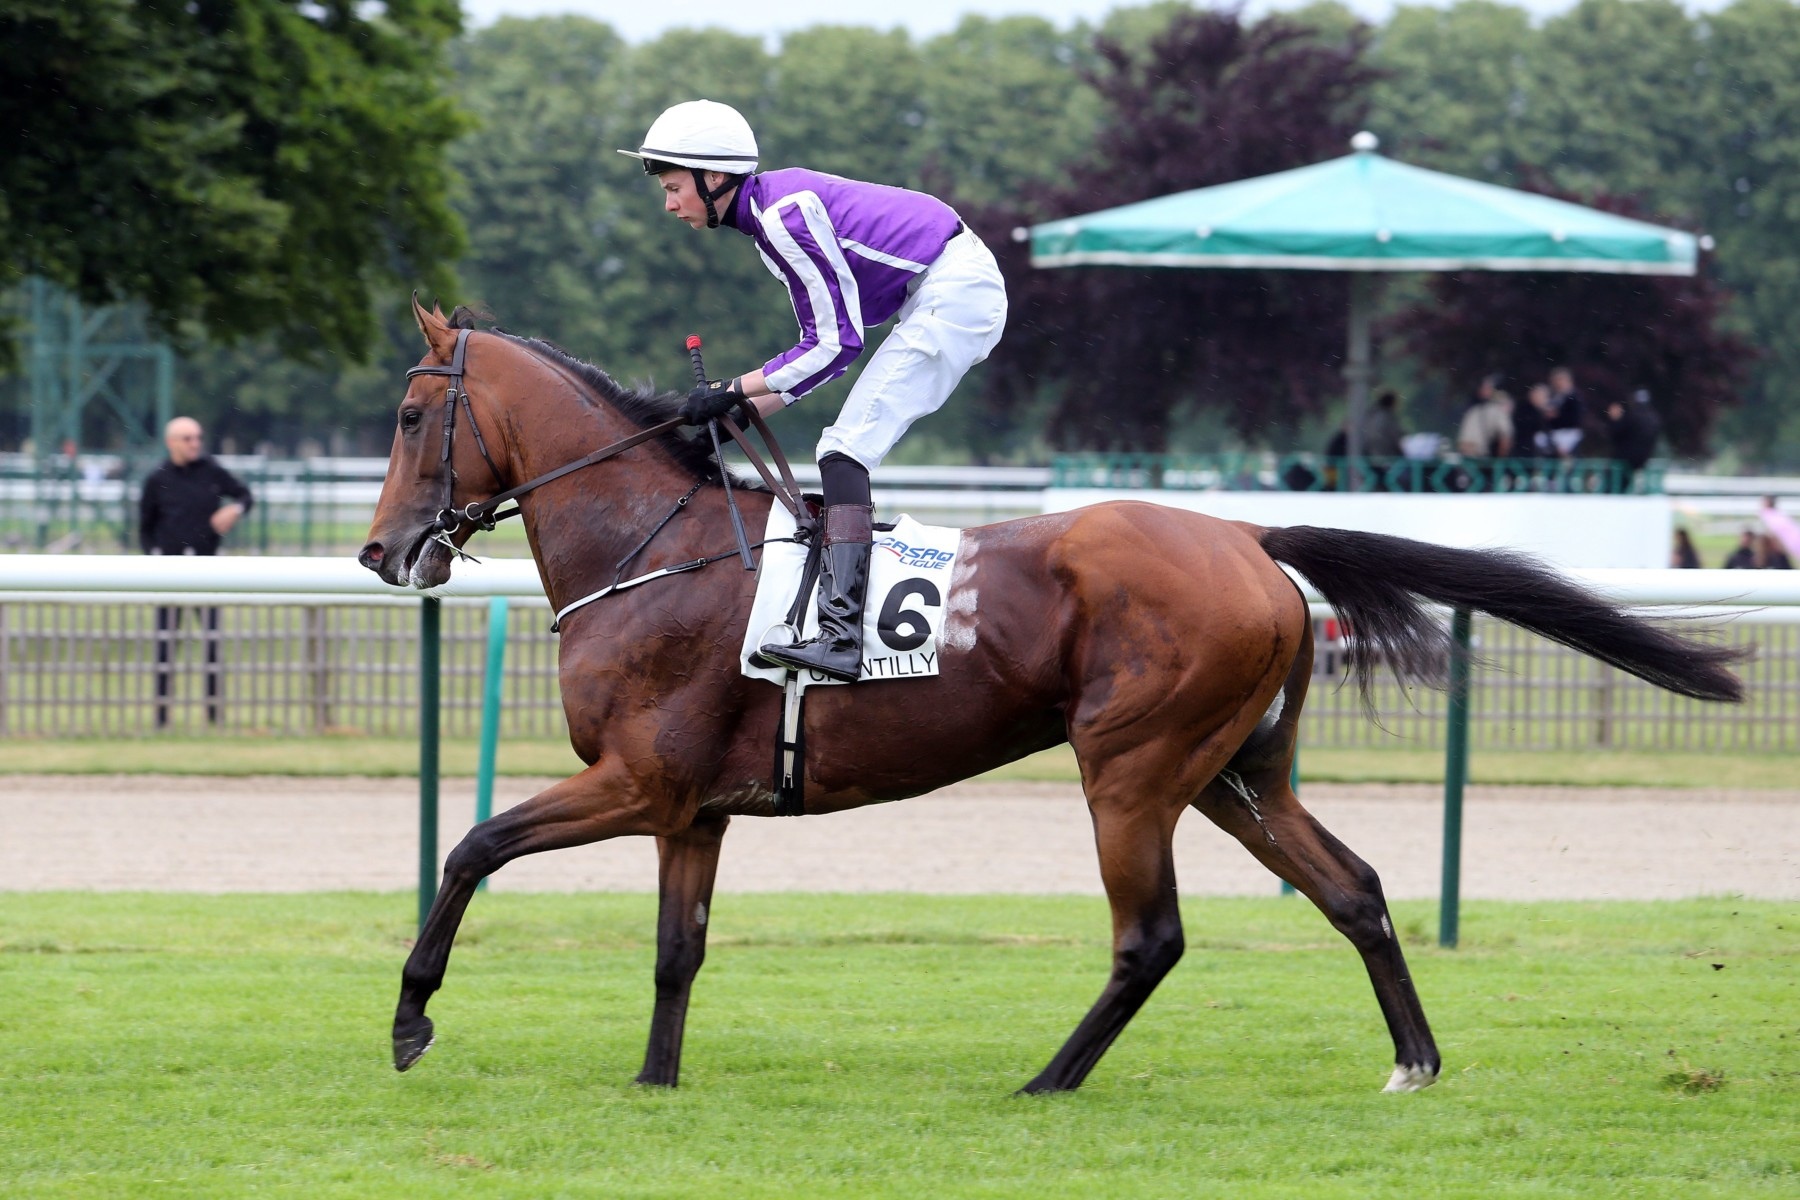 CORONATION CUP - Highland Reel, le frequent flyer